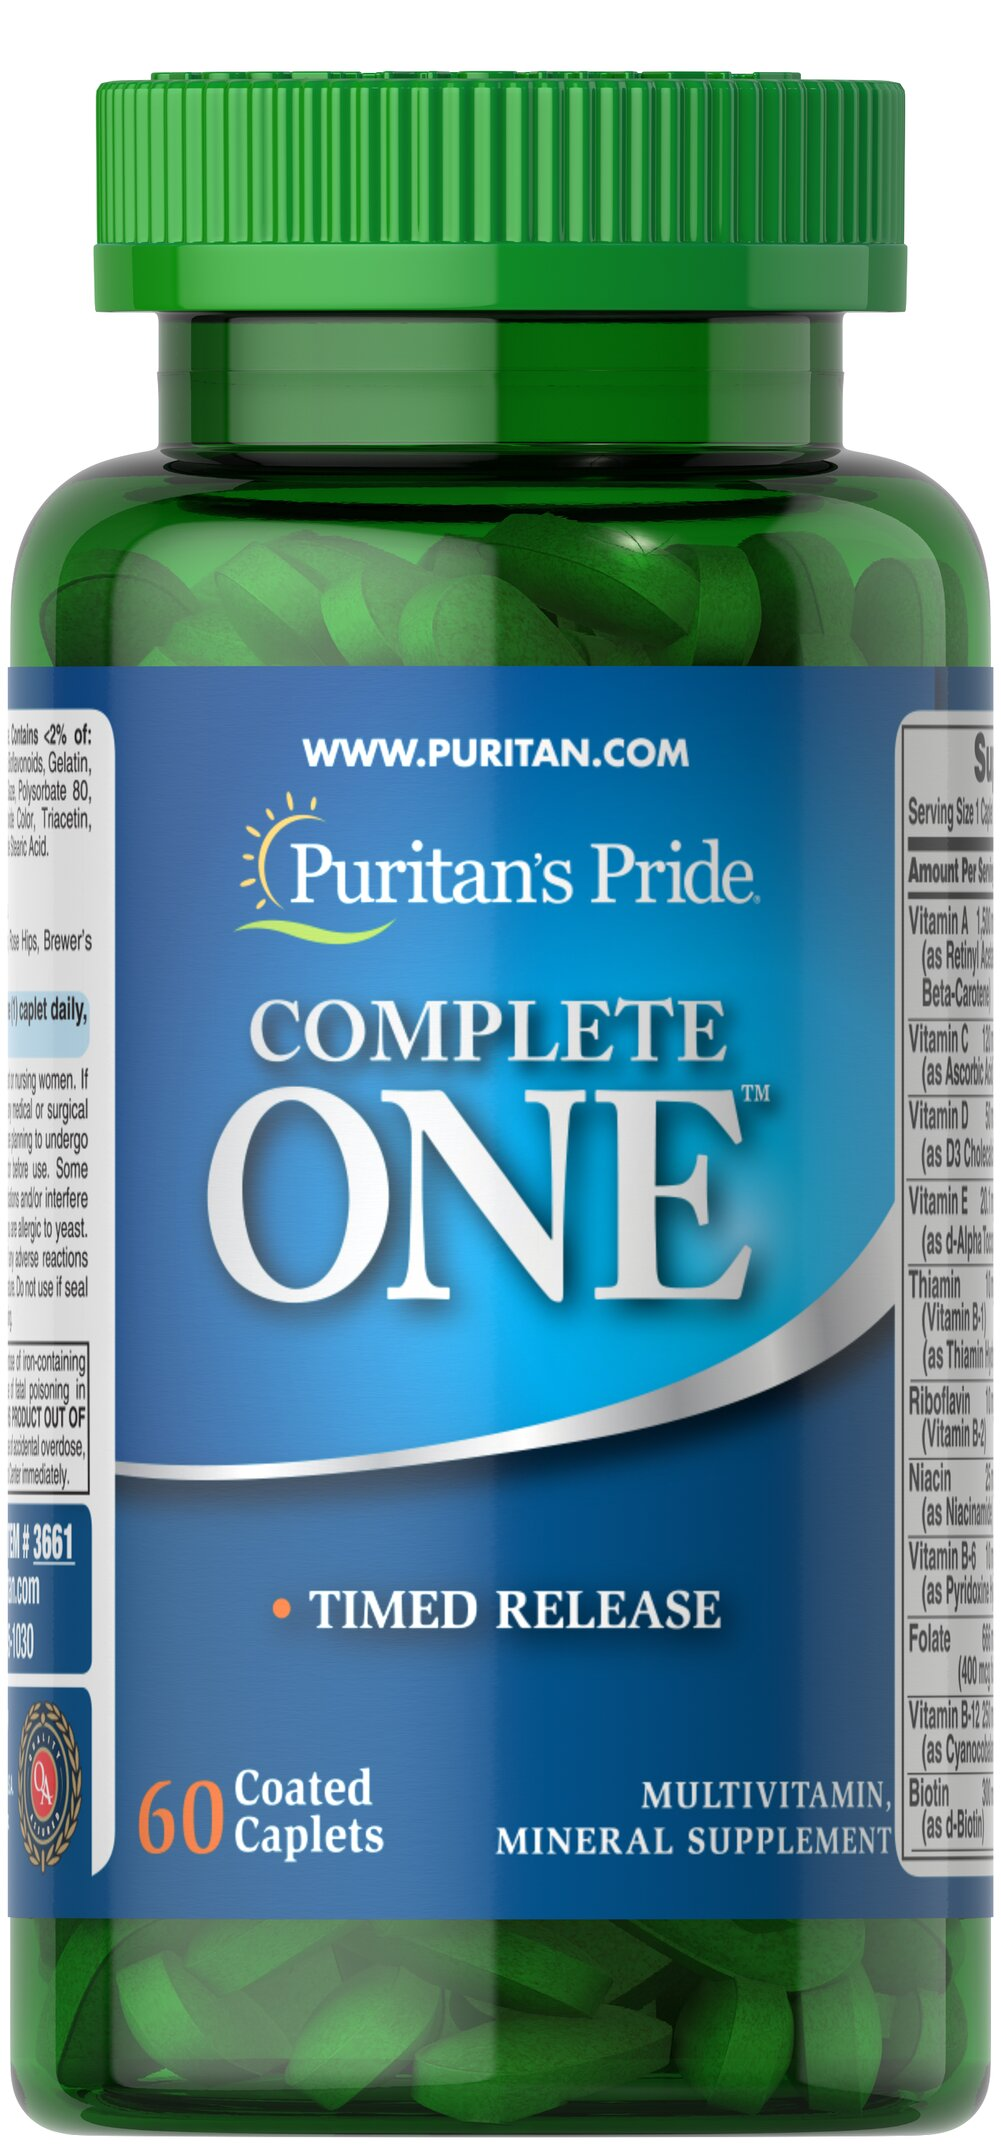 Puritan's Pride One™ Multivitamins Timed Release <p>Special multivitamins formula with beta-carotene. Each easy-to-swallow tablet provides: 28 essential nutrients, long acting B-Complex and C Vitamins, plus 13 Essential Minerals including Chromium, Selenium and Zinc.</p> 60 Caplets